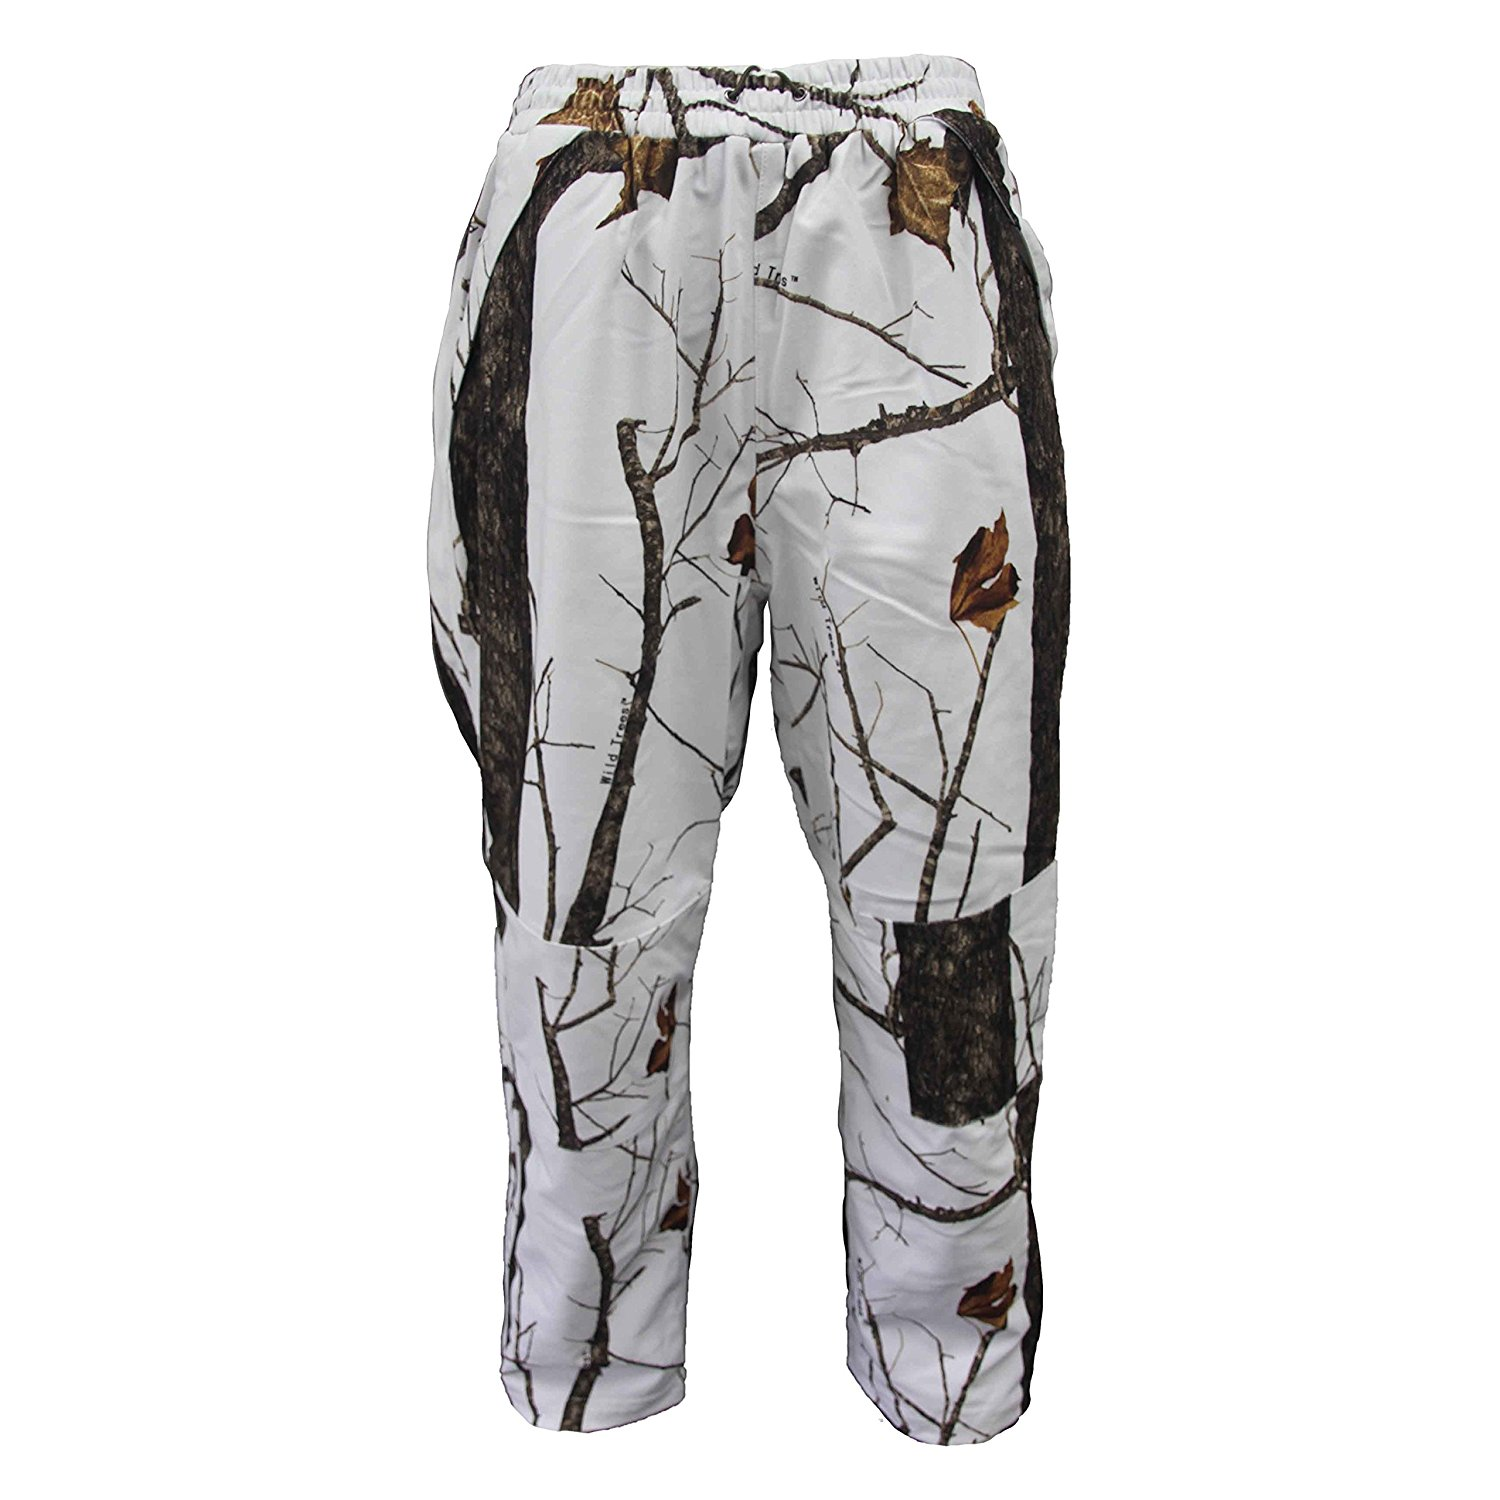 best sneakers a63af c73c2 NEW Outfitter Men s Waterproof Pants, Wild Tree Snow, 4X-Large ...